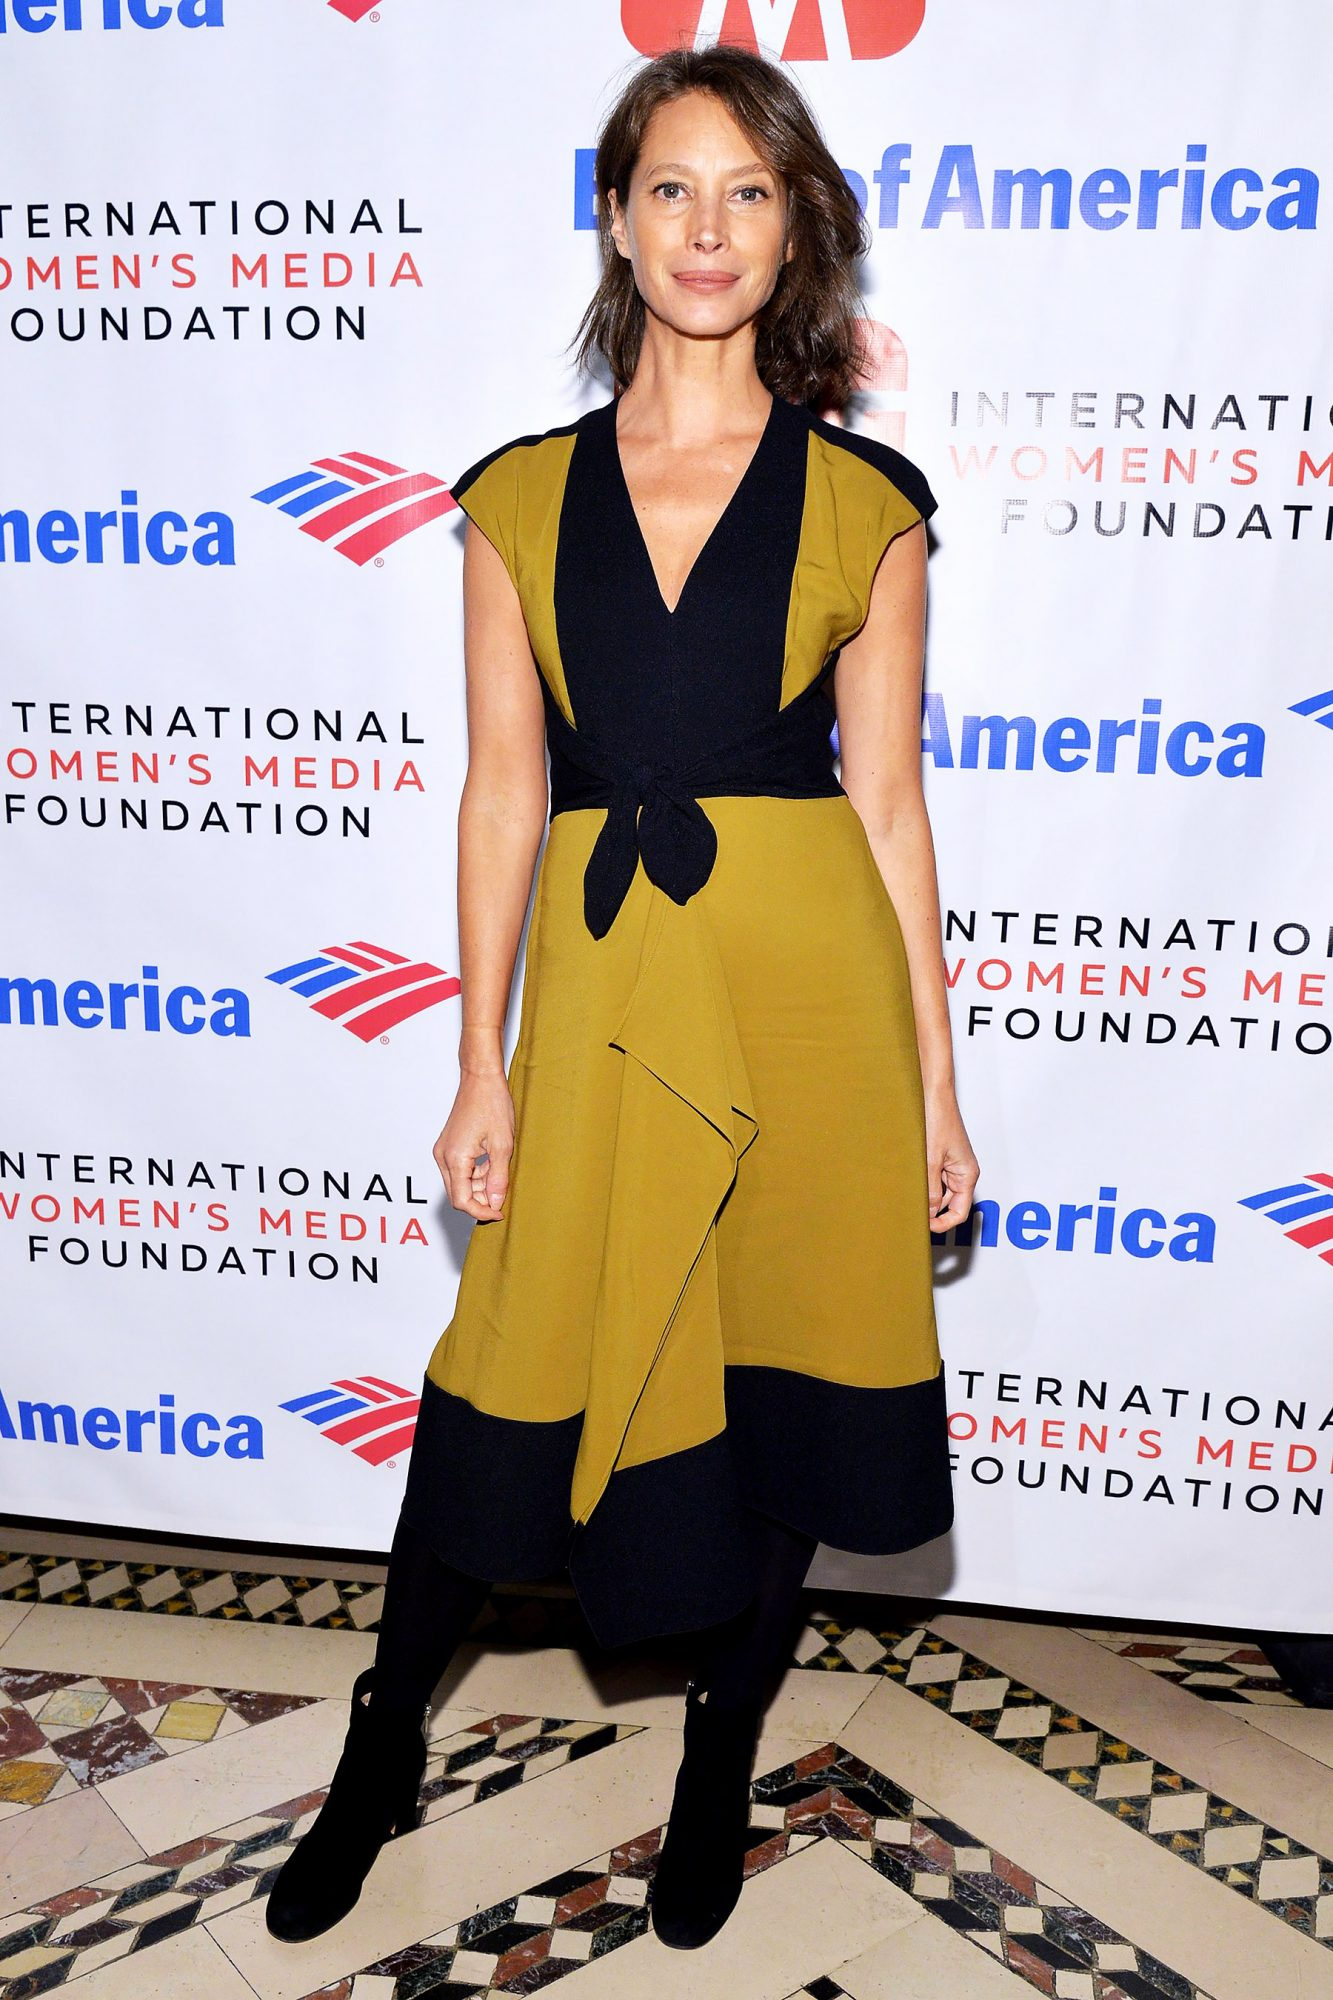 Courage in Journalism awards ceremony, New York, USA - 25 Oct 2018